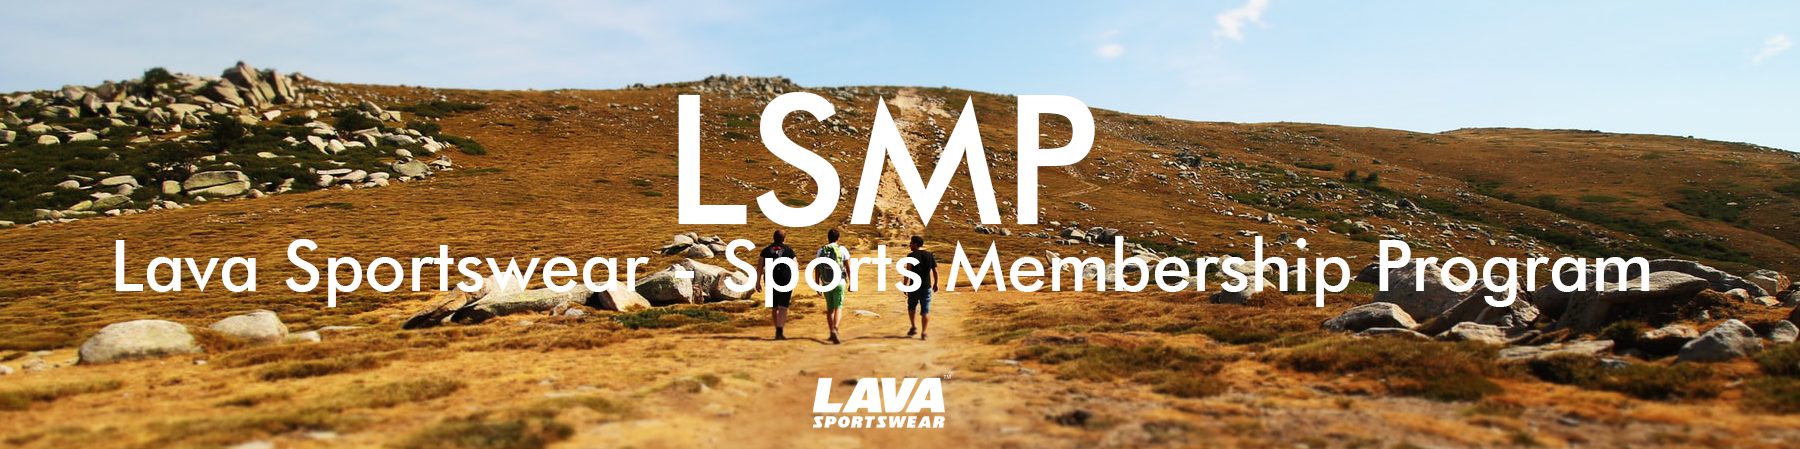 Lava - Sport Membership Program